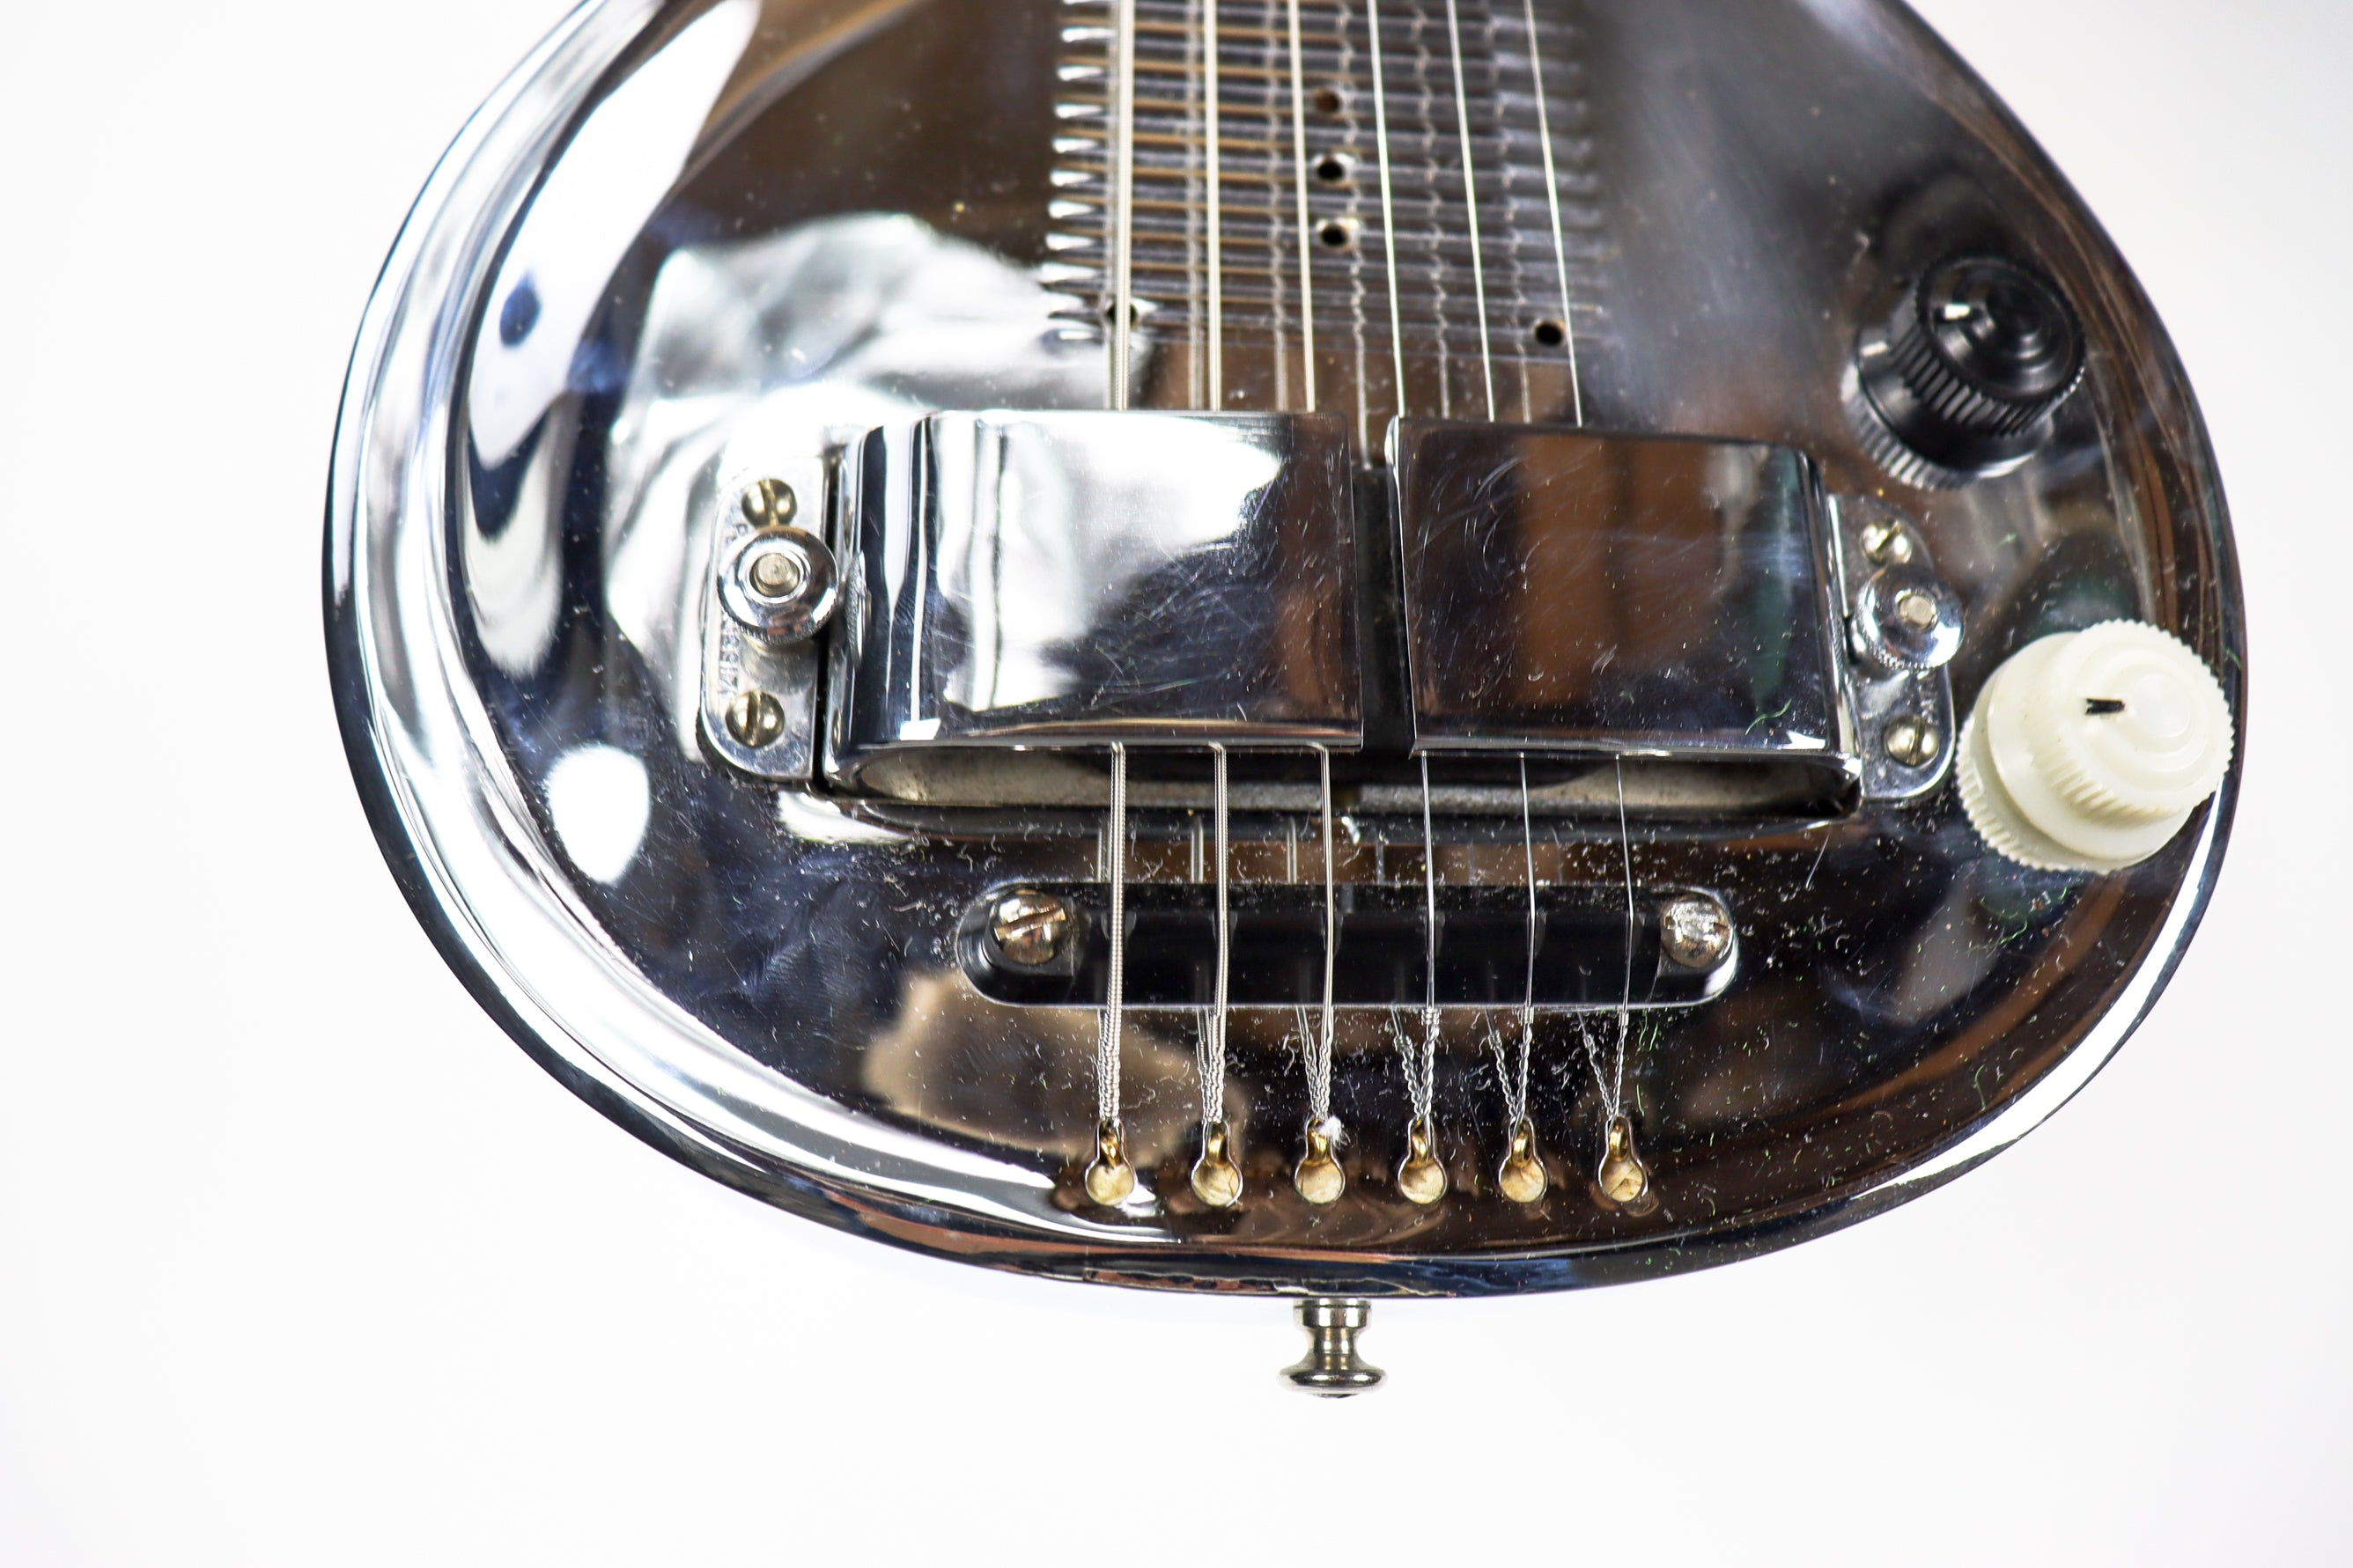 Rickenbacker 1939 Silver Hawaiian Lap Steel